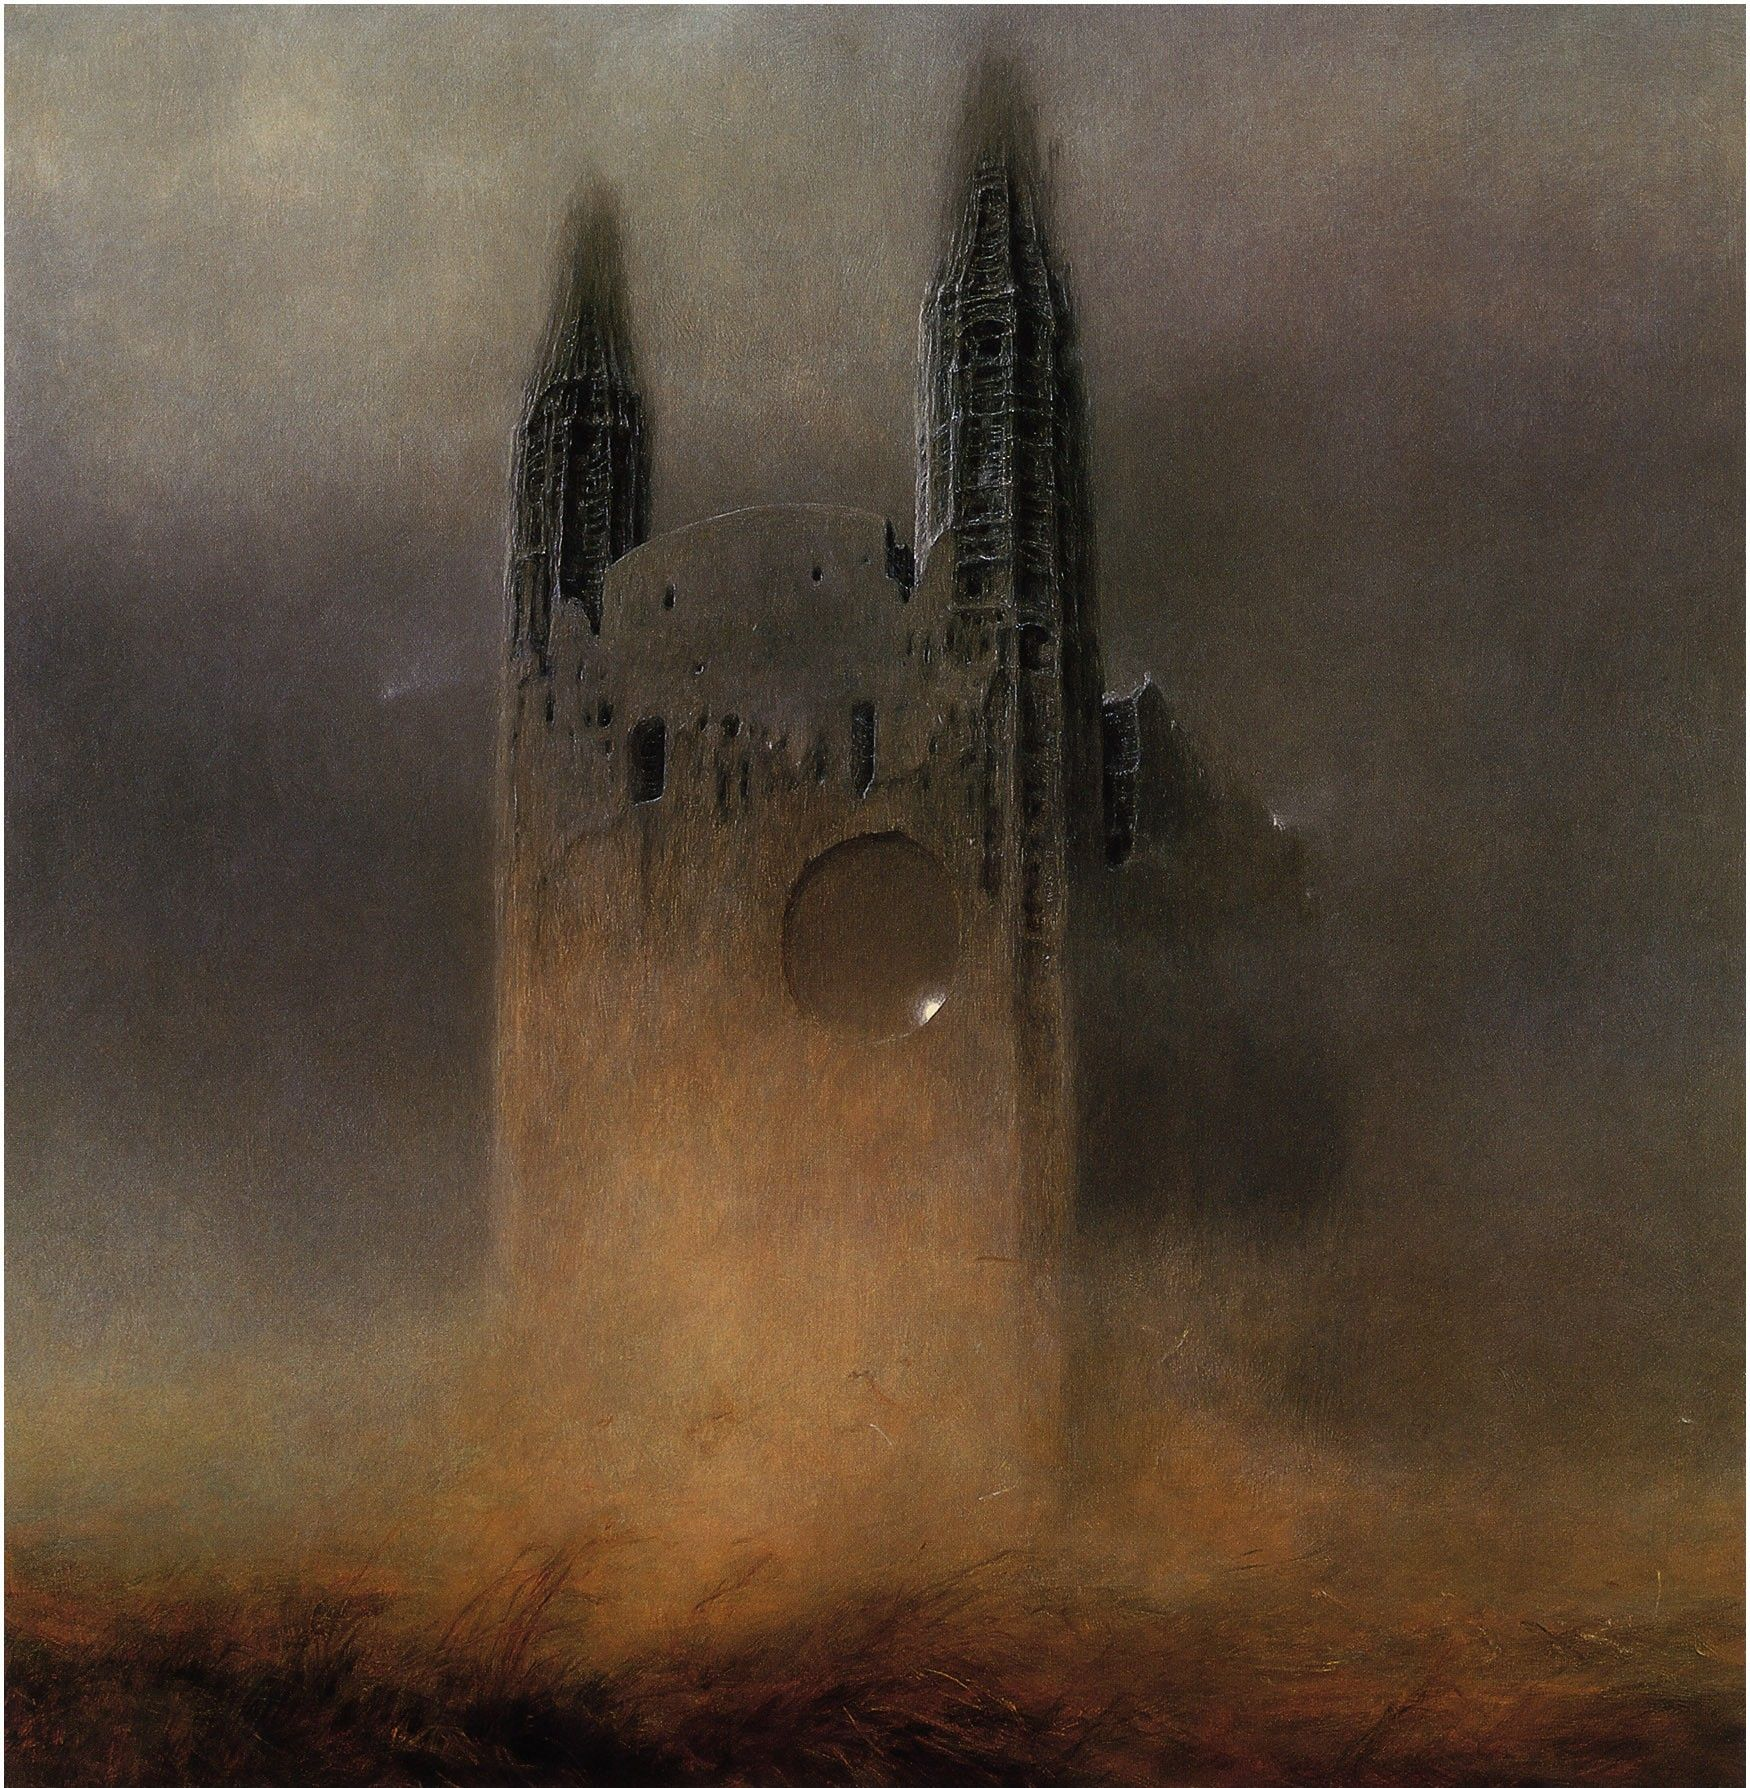 Zdzisław Beksiński, Artwork, Dark, Buildings, Old, Towers